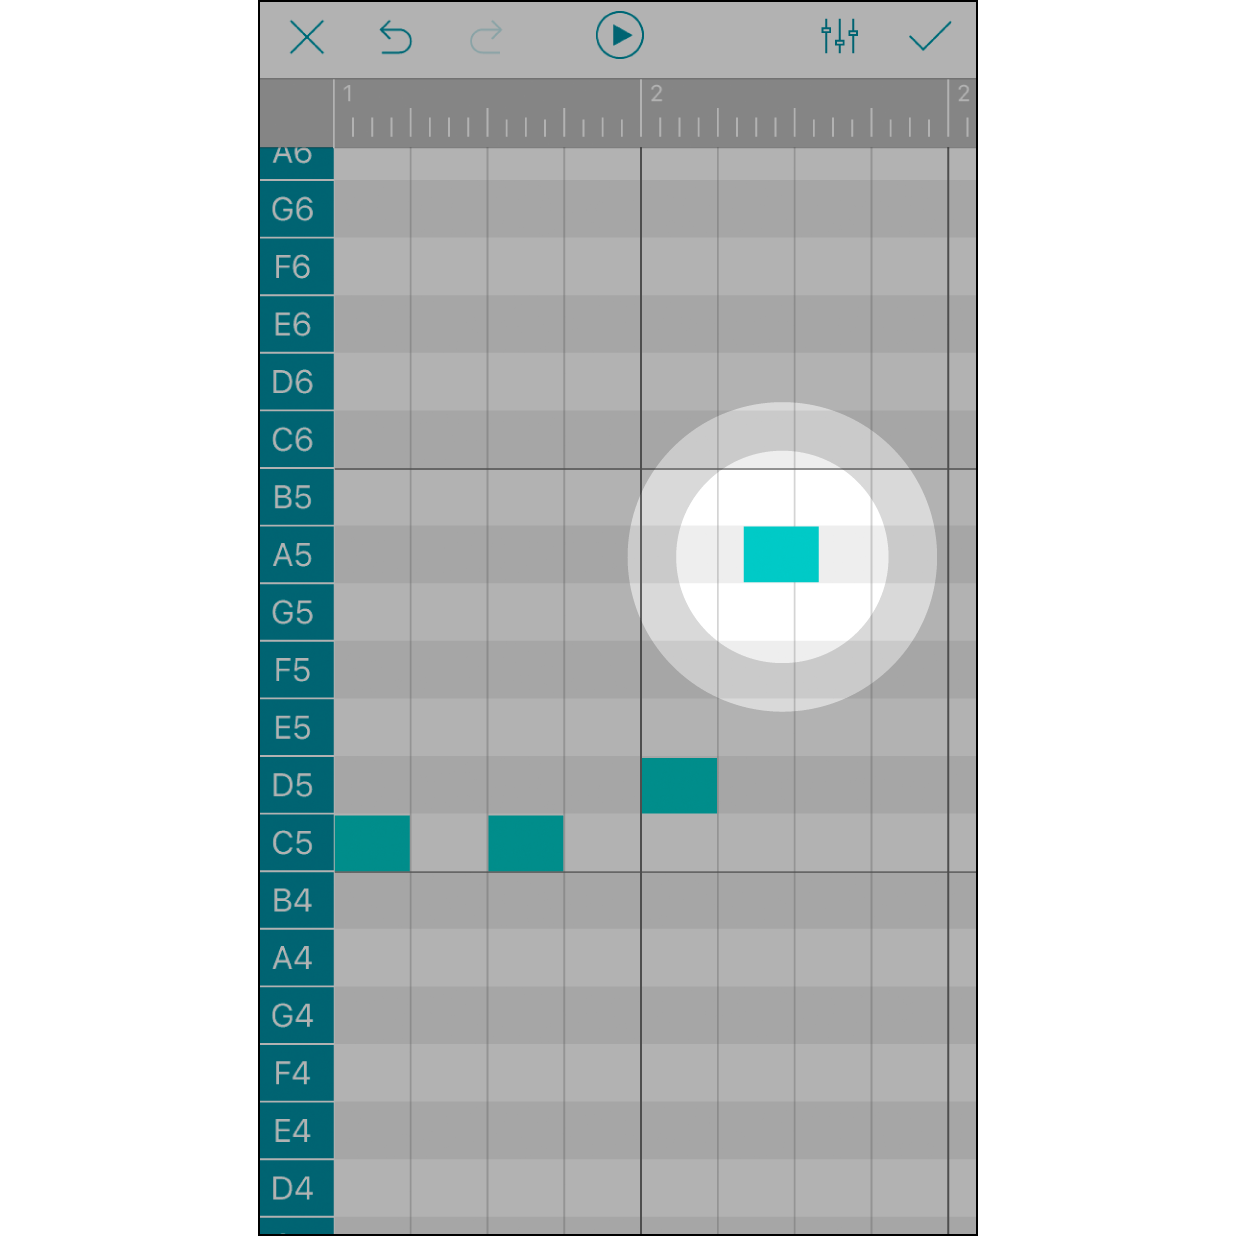 Long Press a Note to AdjustPress and hold a note can move its location forward or backward subtly. Each note in the box is allowed to move forward or backward (¼ or ½ outside the box). Each ¼ width of a box represents a 1/64 note.